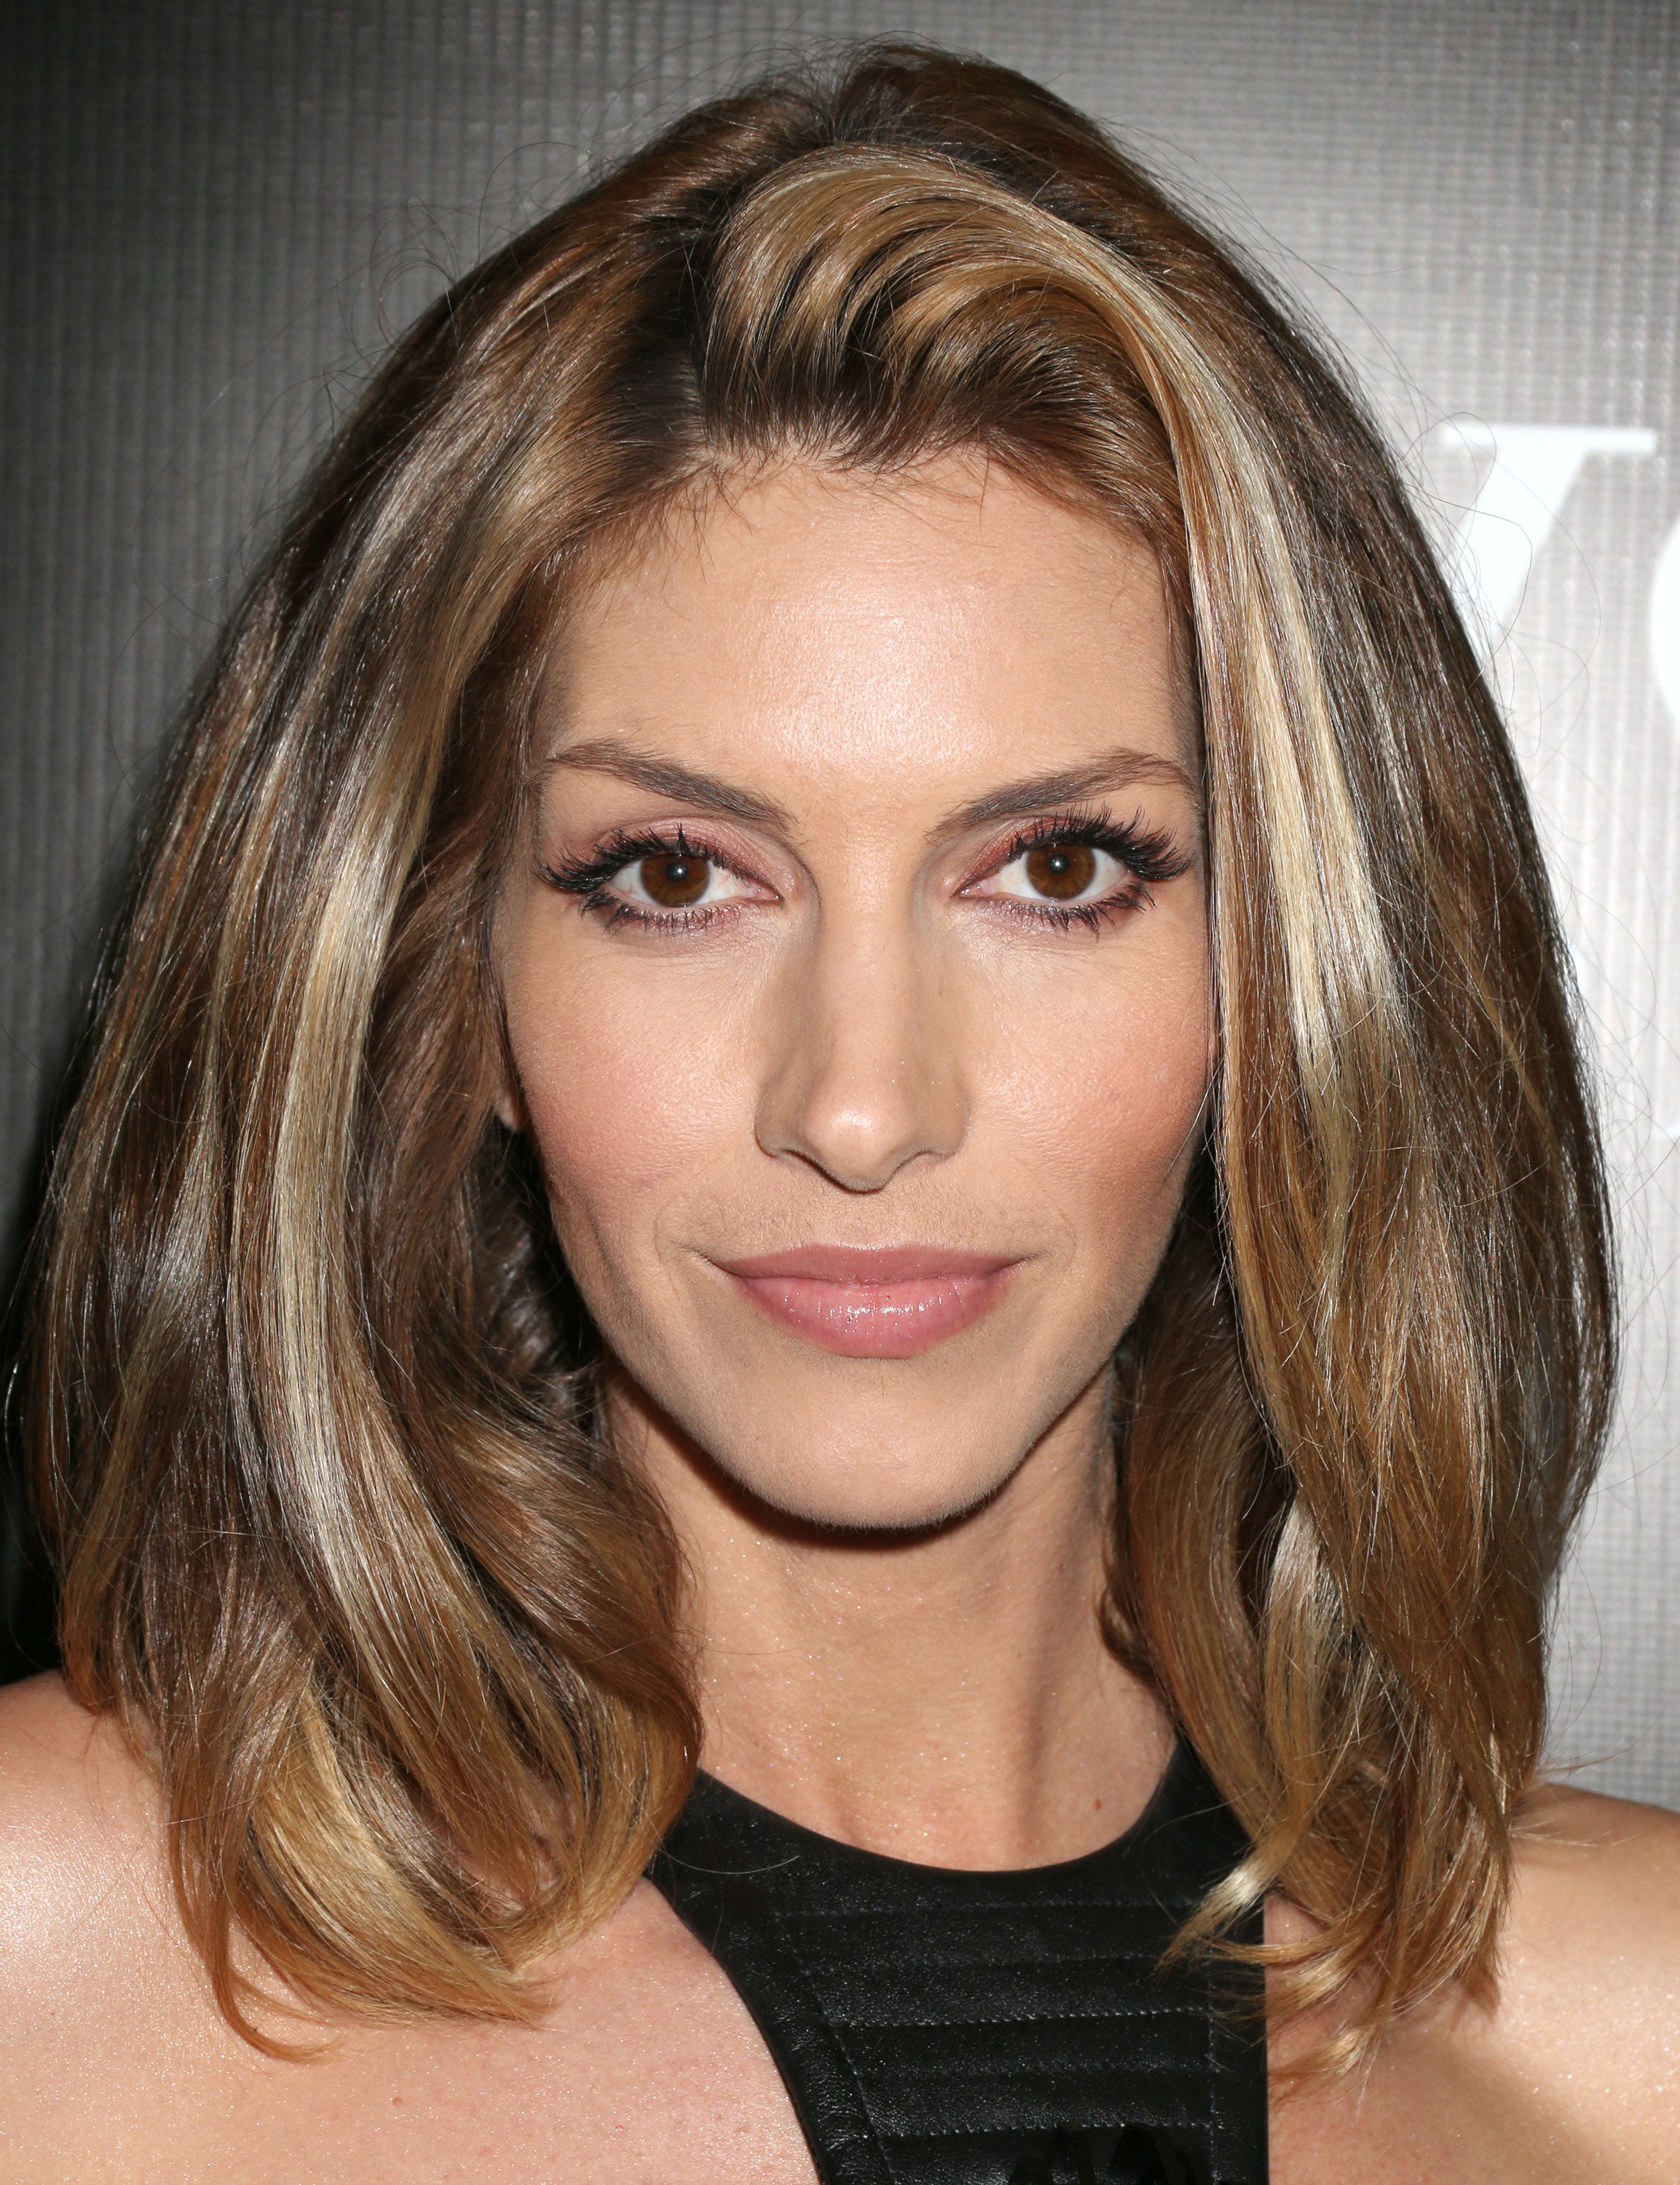 Spefashion Pertaining To Most Up To Date Medium Hairstyles For Women With Long Faces (View 17 of 20)